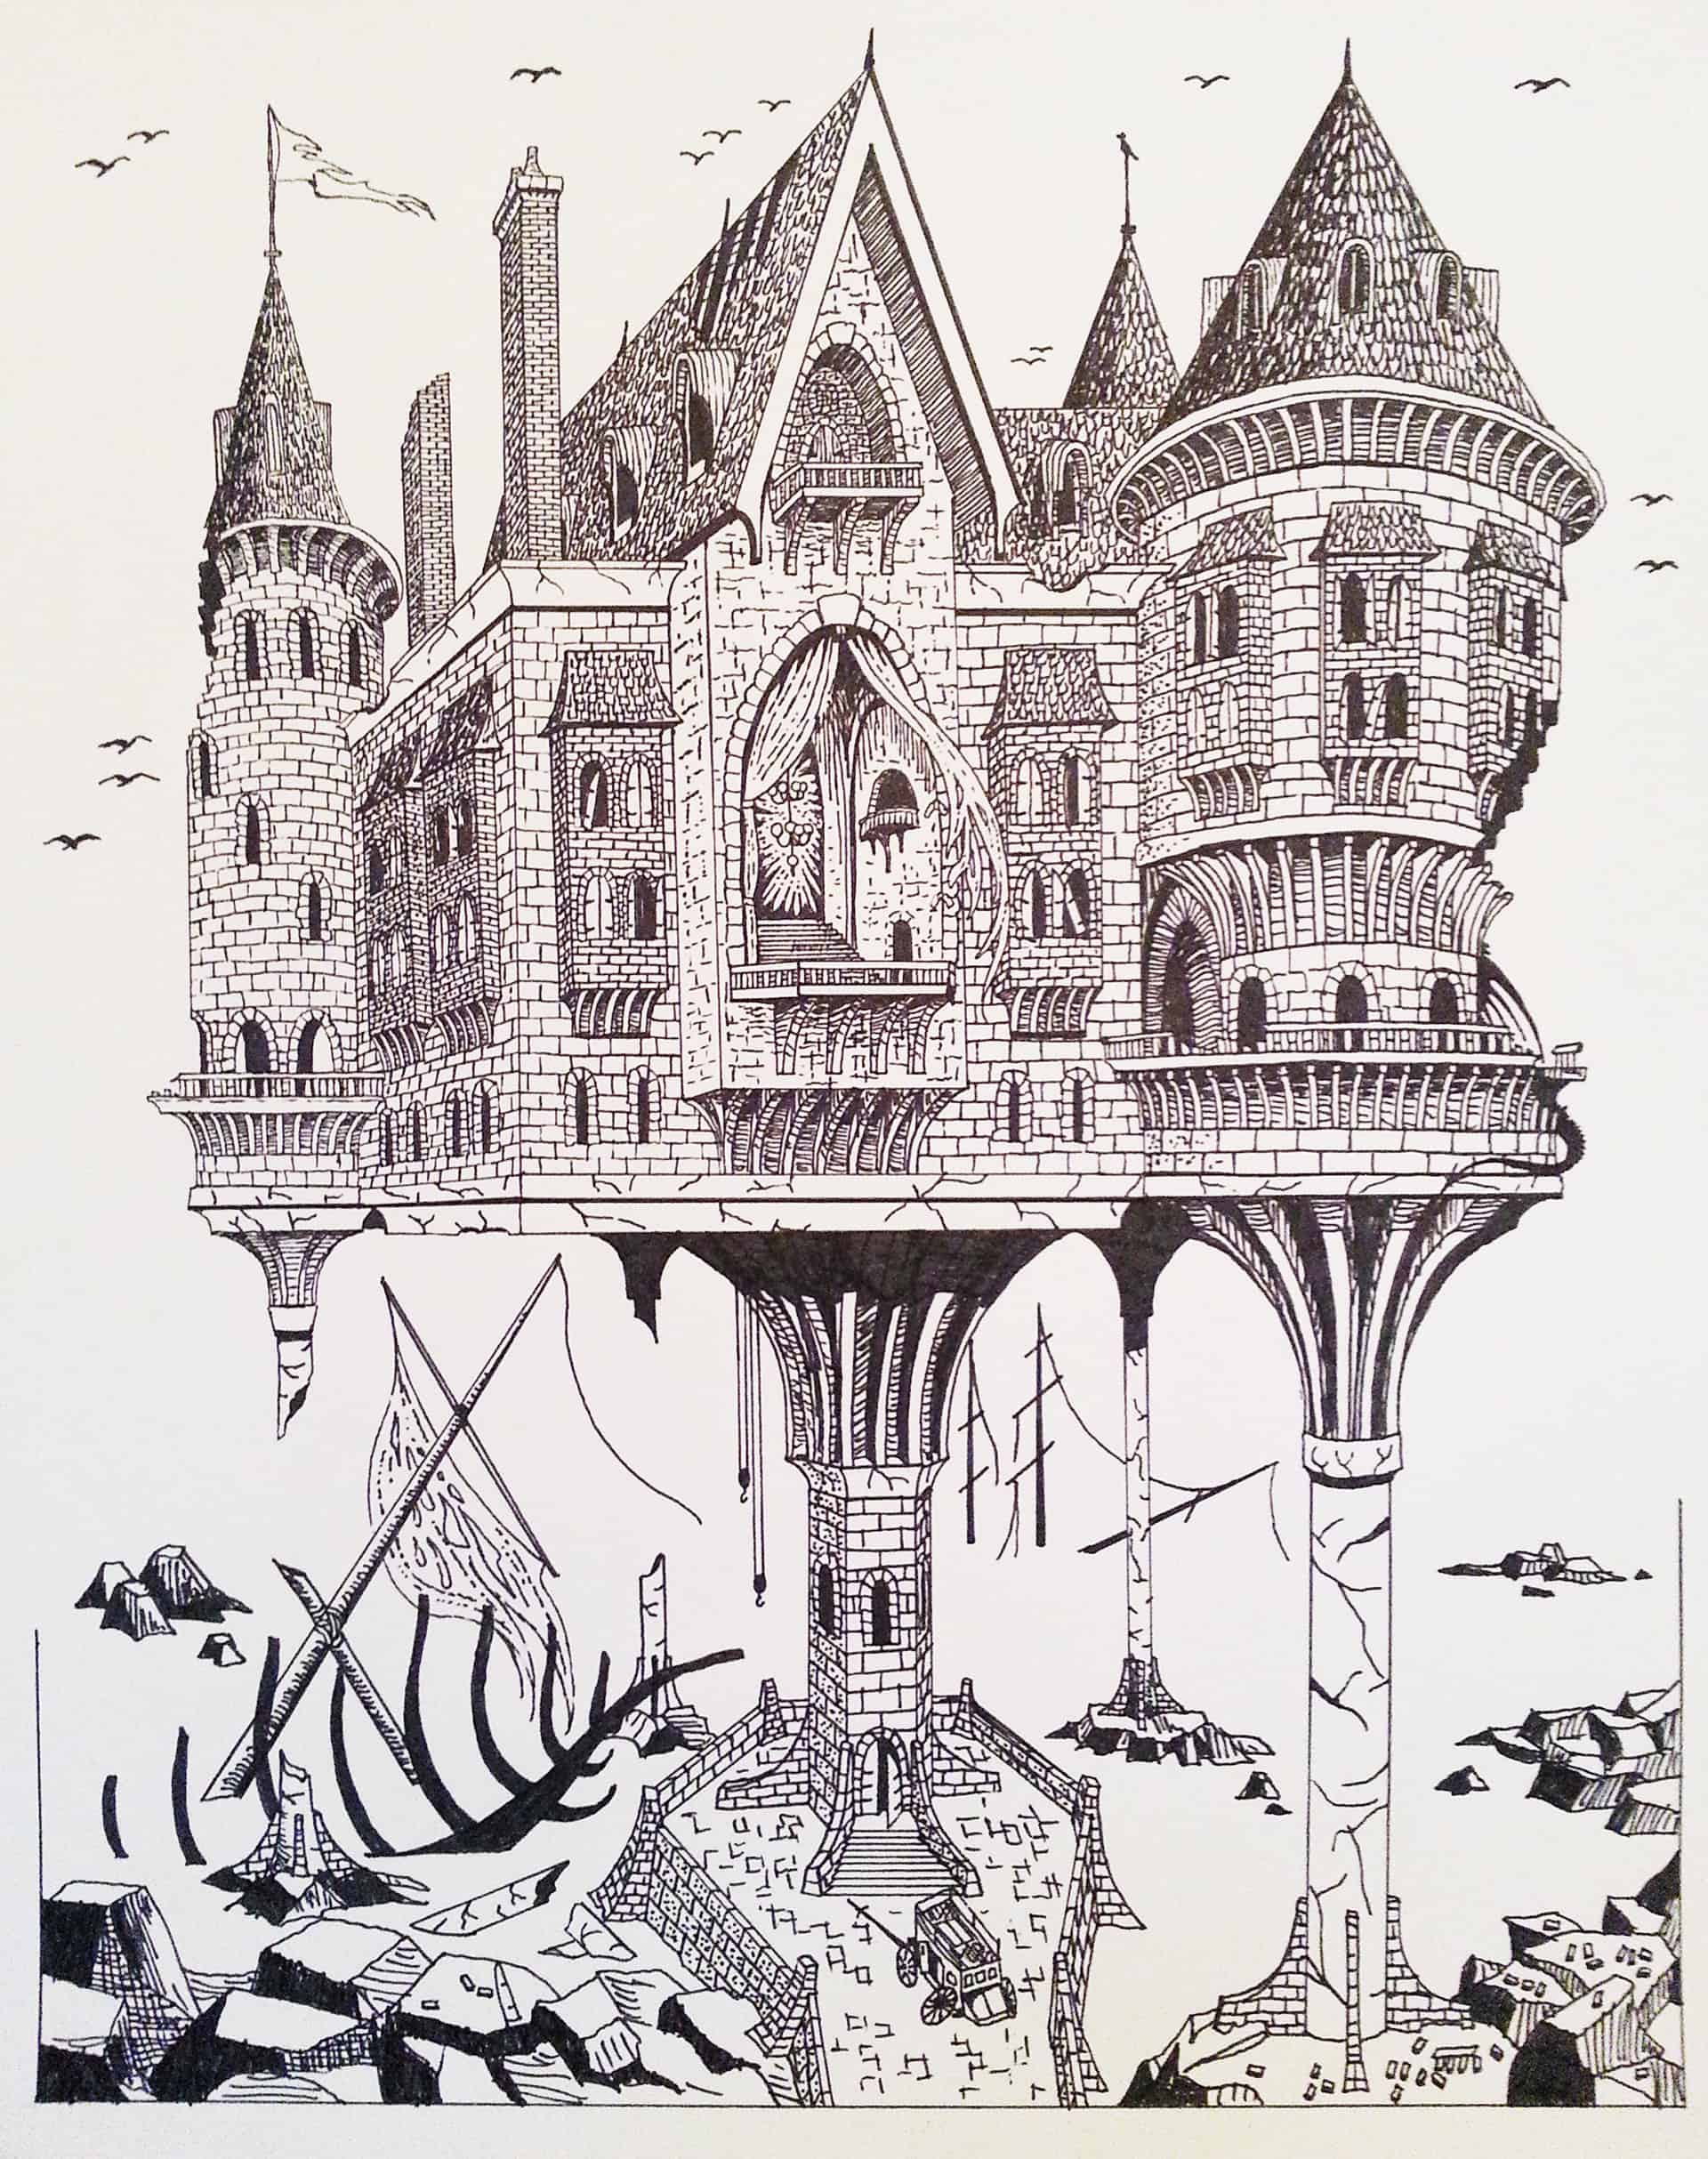 Fantasy castle pen and ink illustration by Clark Giesbrecht